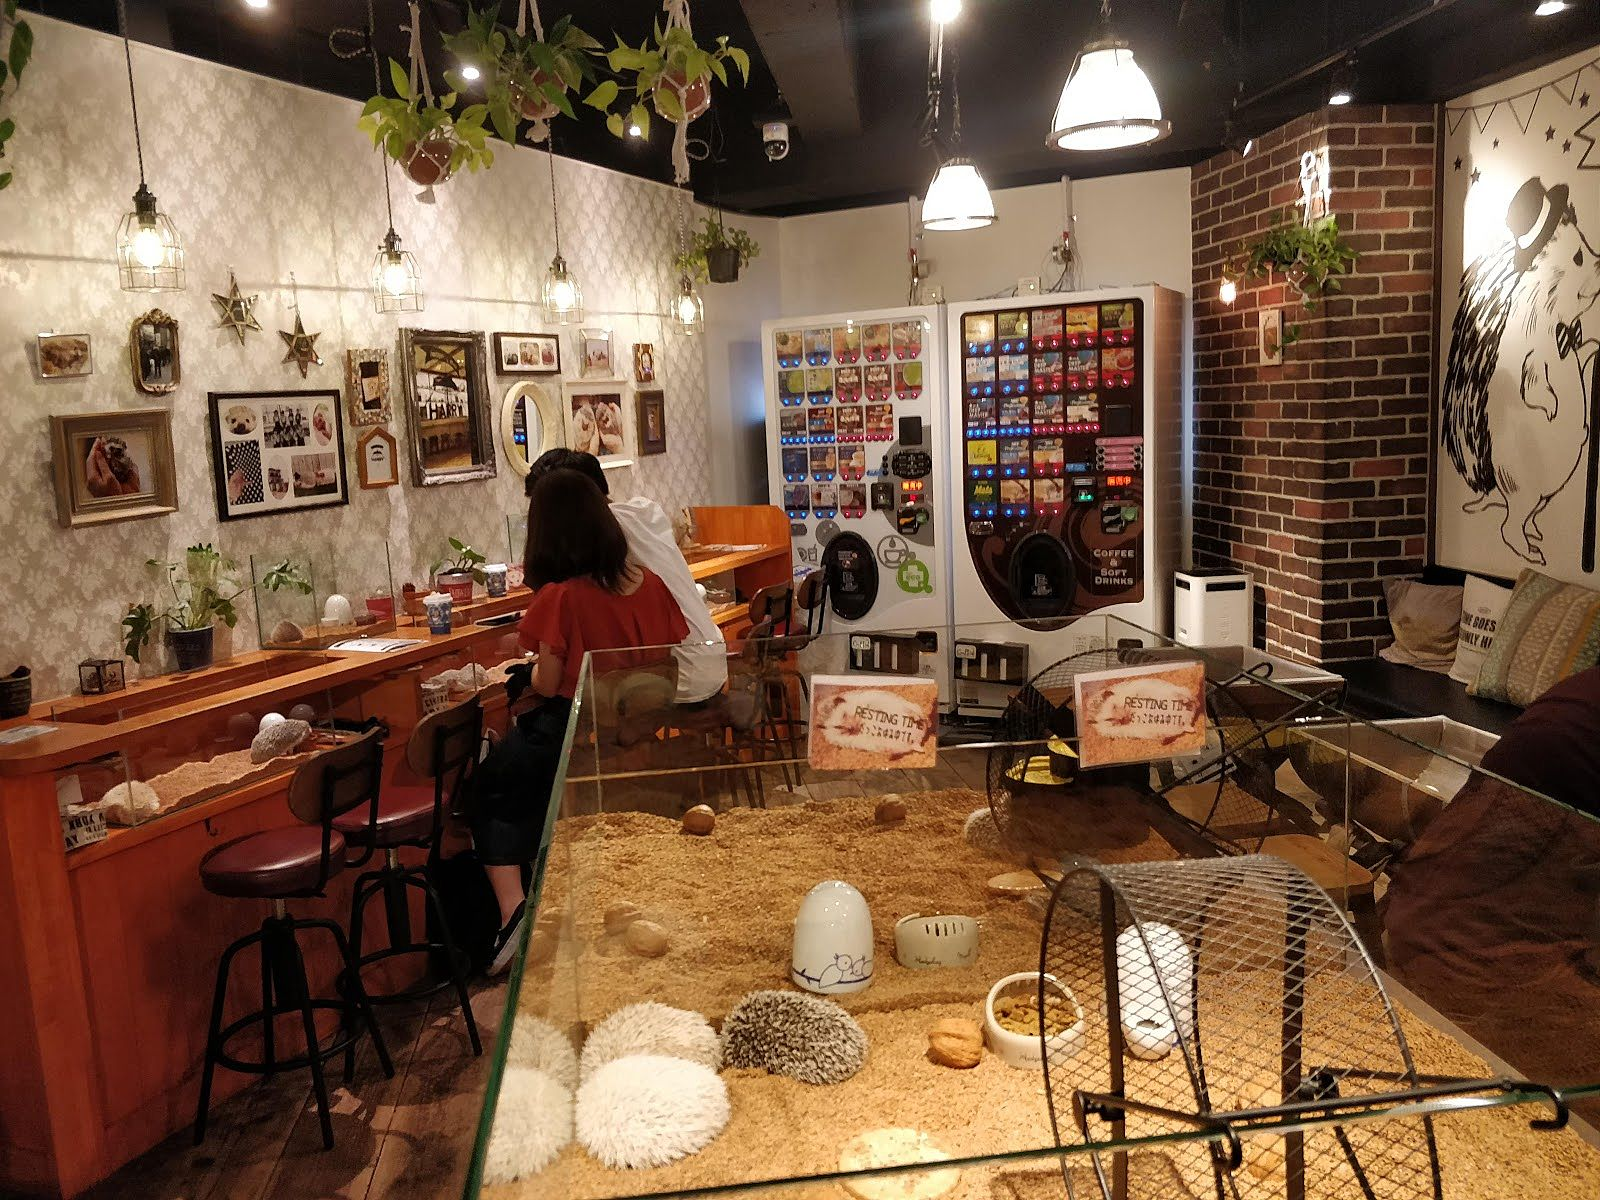 Hedgehog Cafe Harry Harajuku Tokyo Japan Recommendation By Lemi In Harajuku Adventures In Wonderland Lemi Re Discover Your City